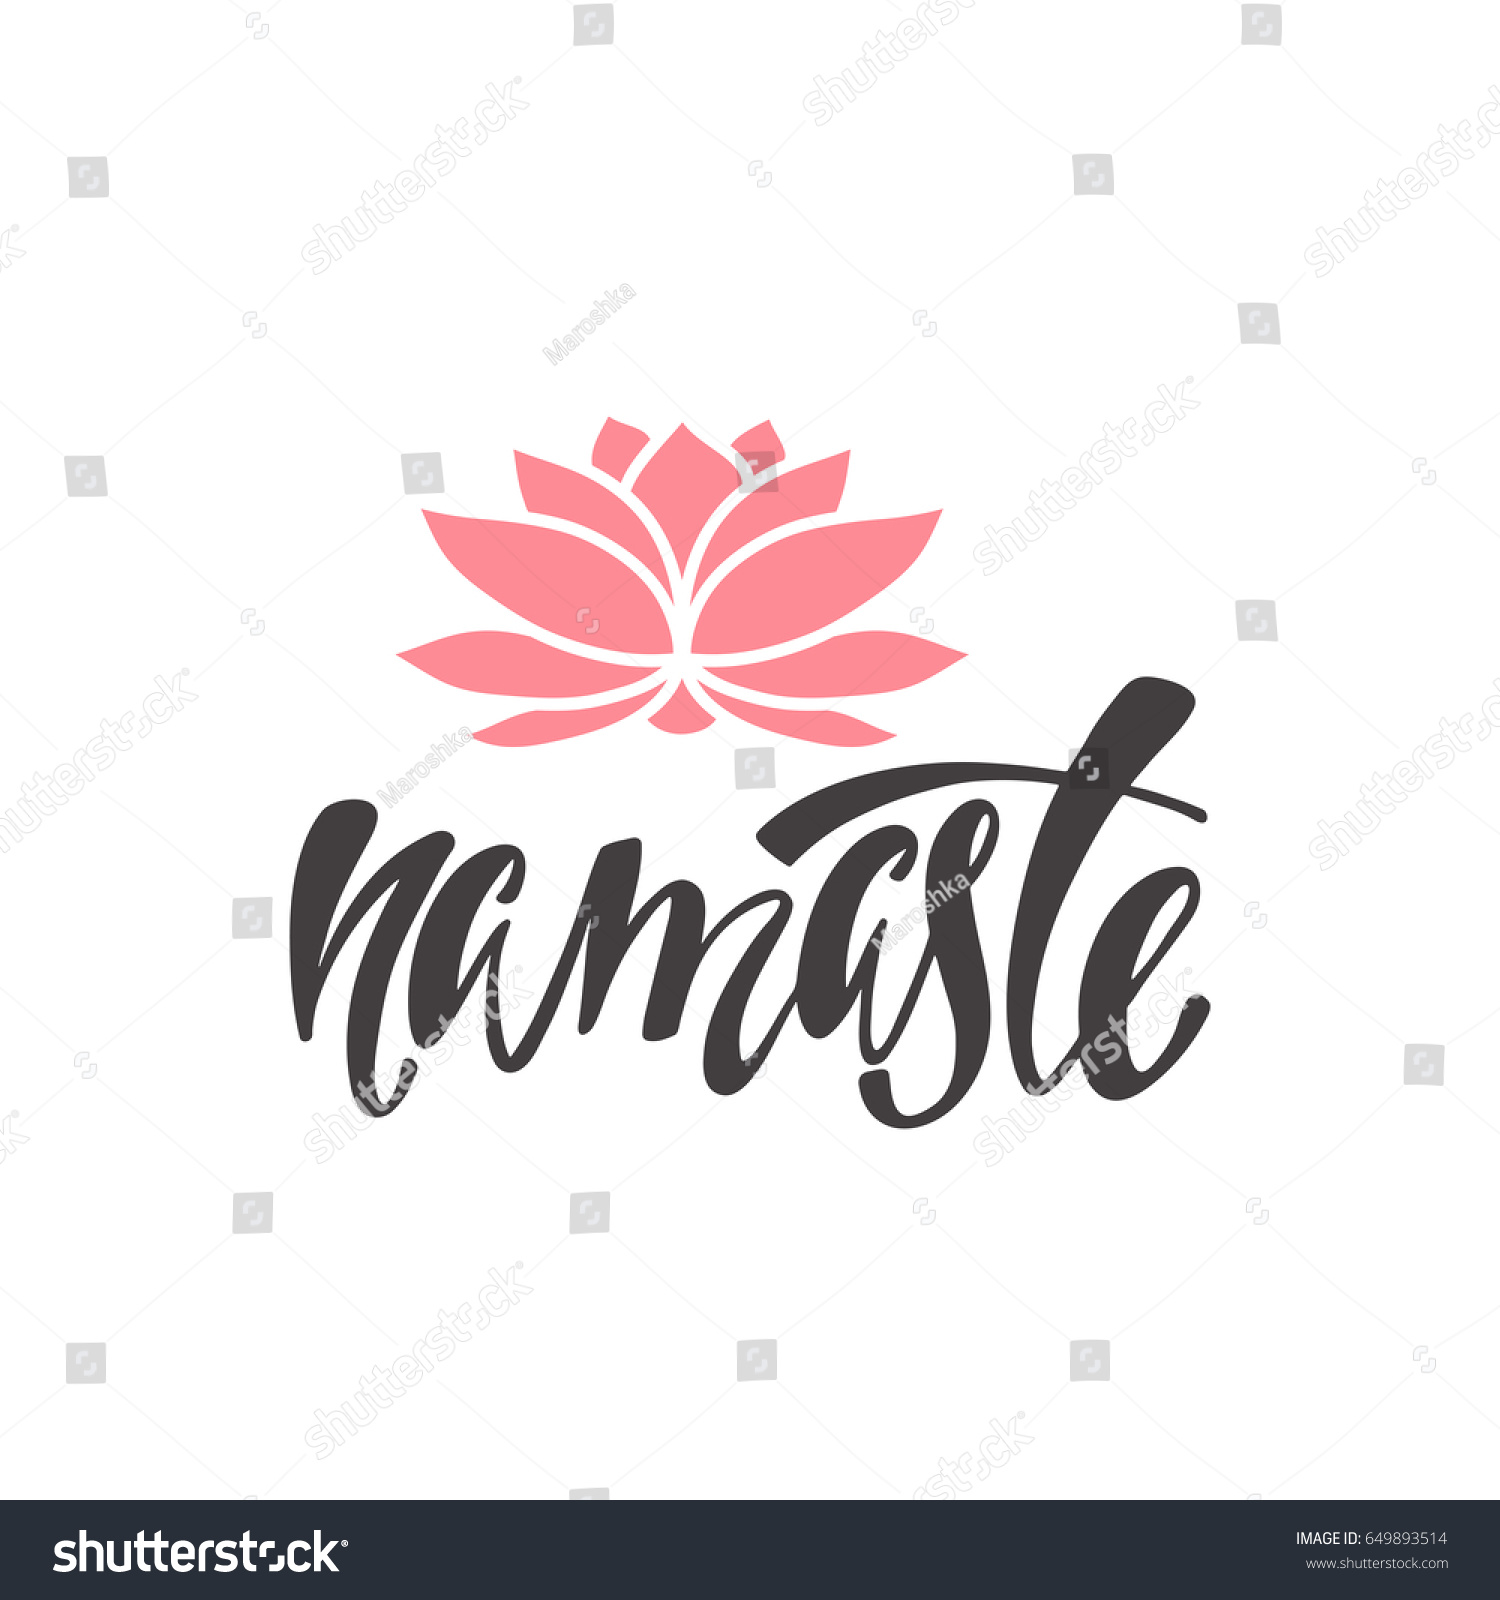 Namaste inspirational quote about happiness modern stock vector inspirational quote about happiness modern calligraphy phrase with silhouette lotus flower simple izmirmasajfo